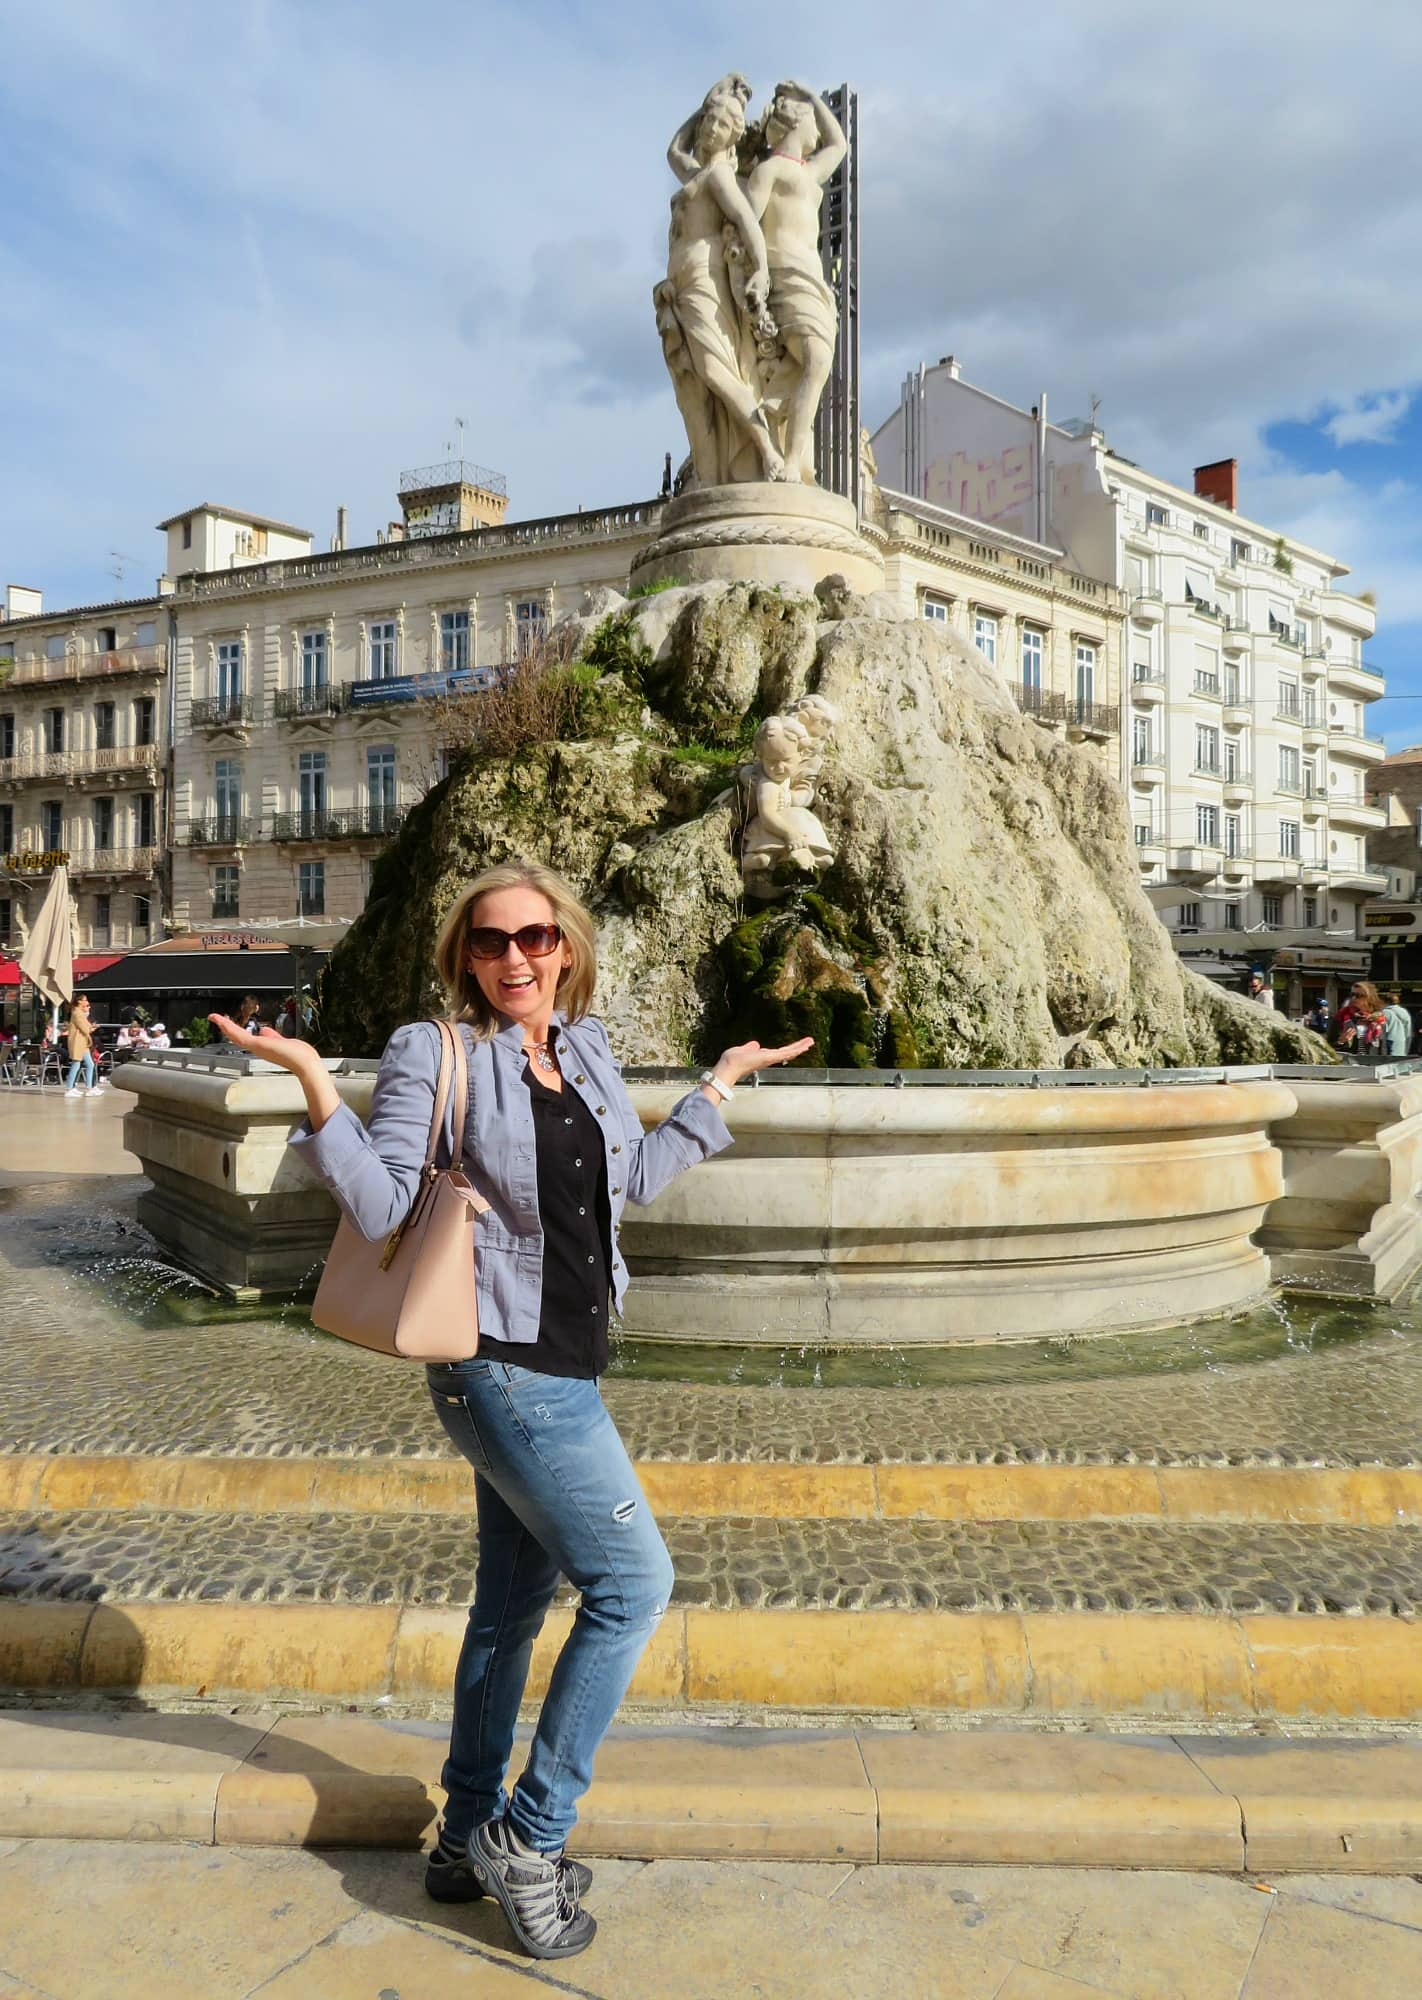 Les Trois Graces fountain in Montpellier, France